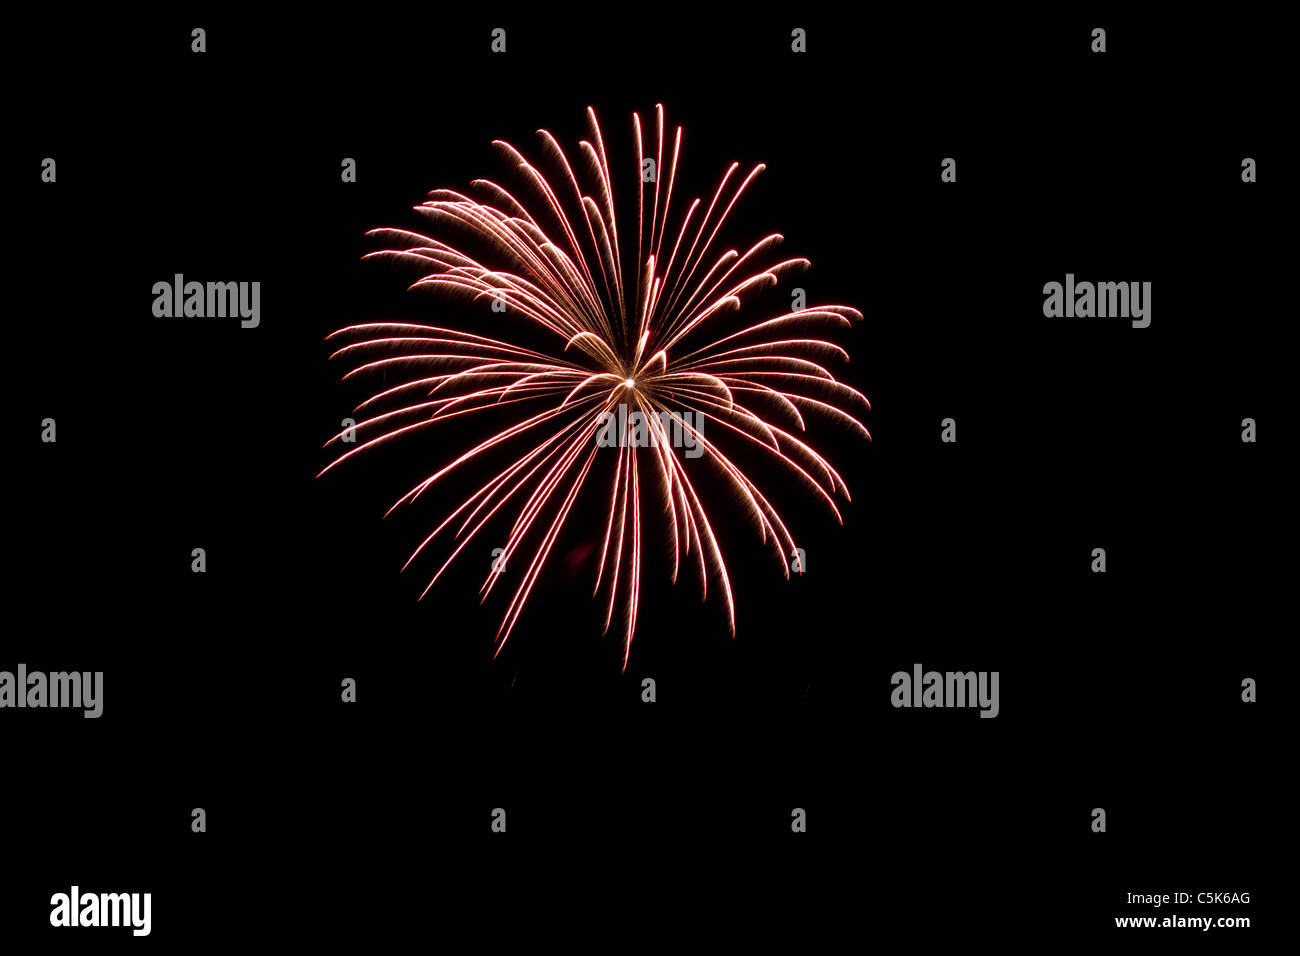 Fireworks burst at Canada Day 2011 in Morden, Manitoba, Canada - Stock Image